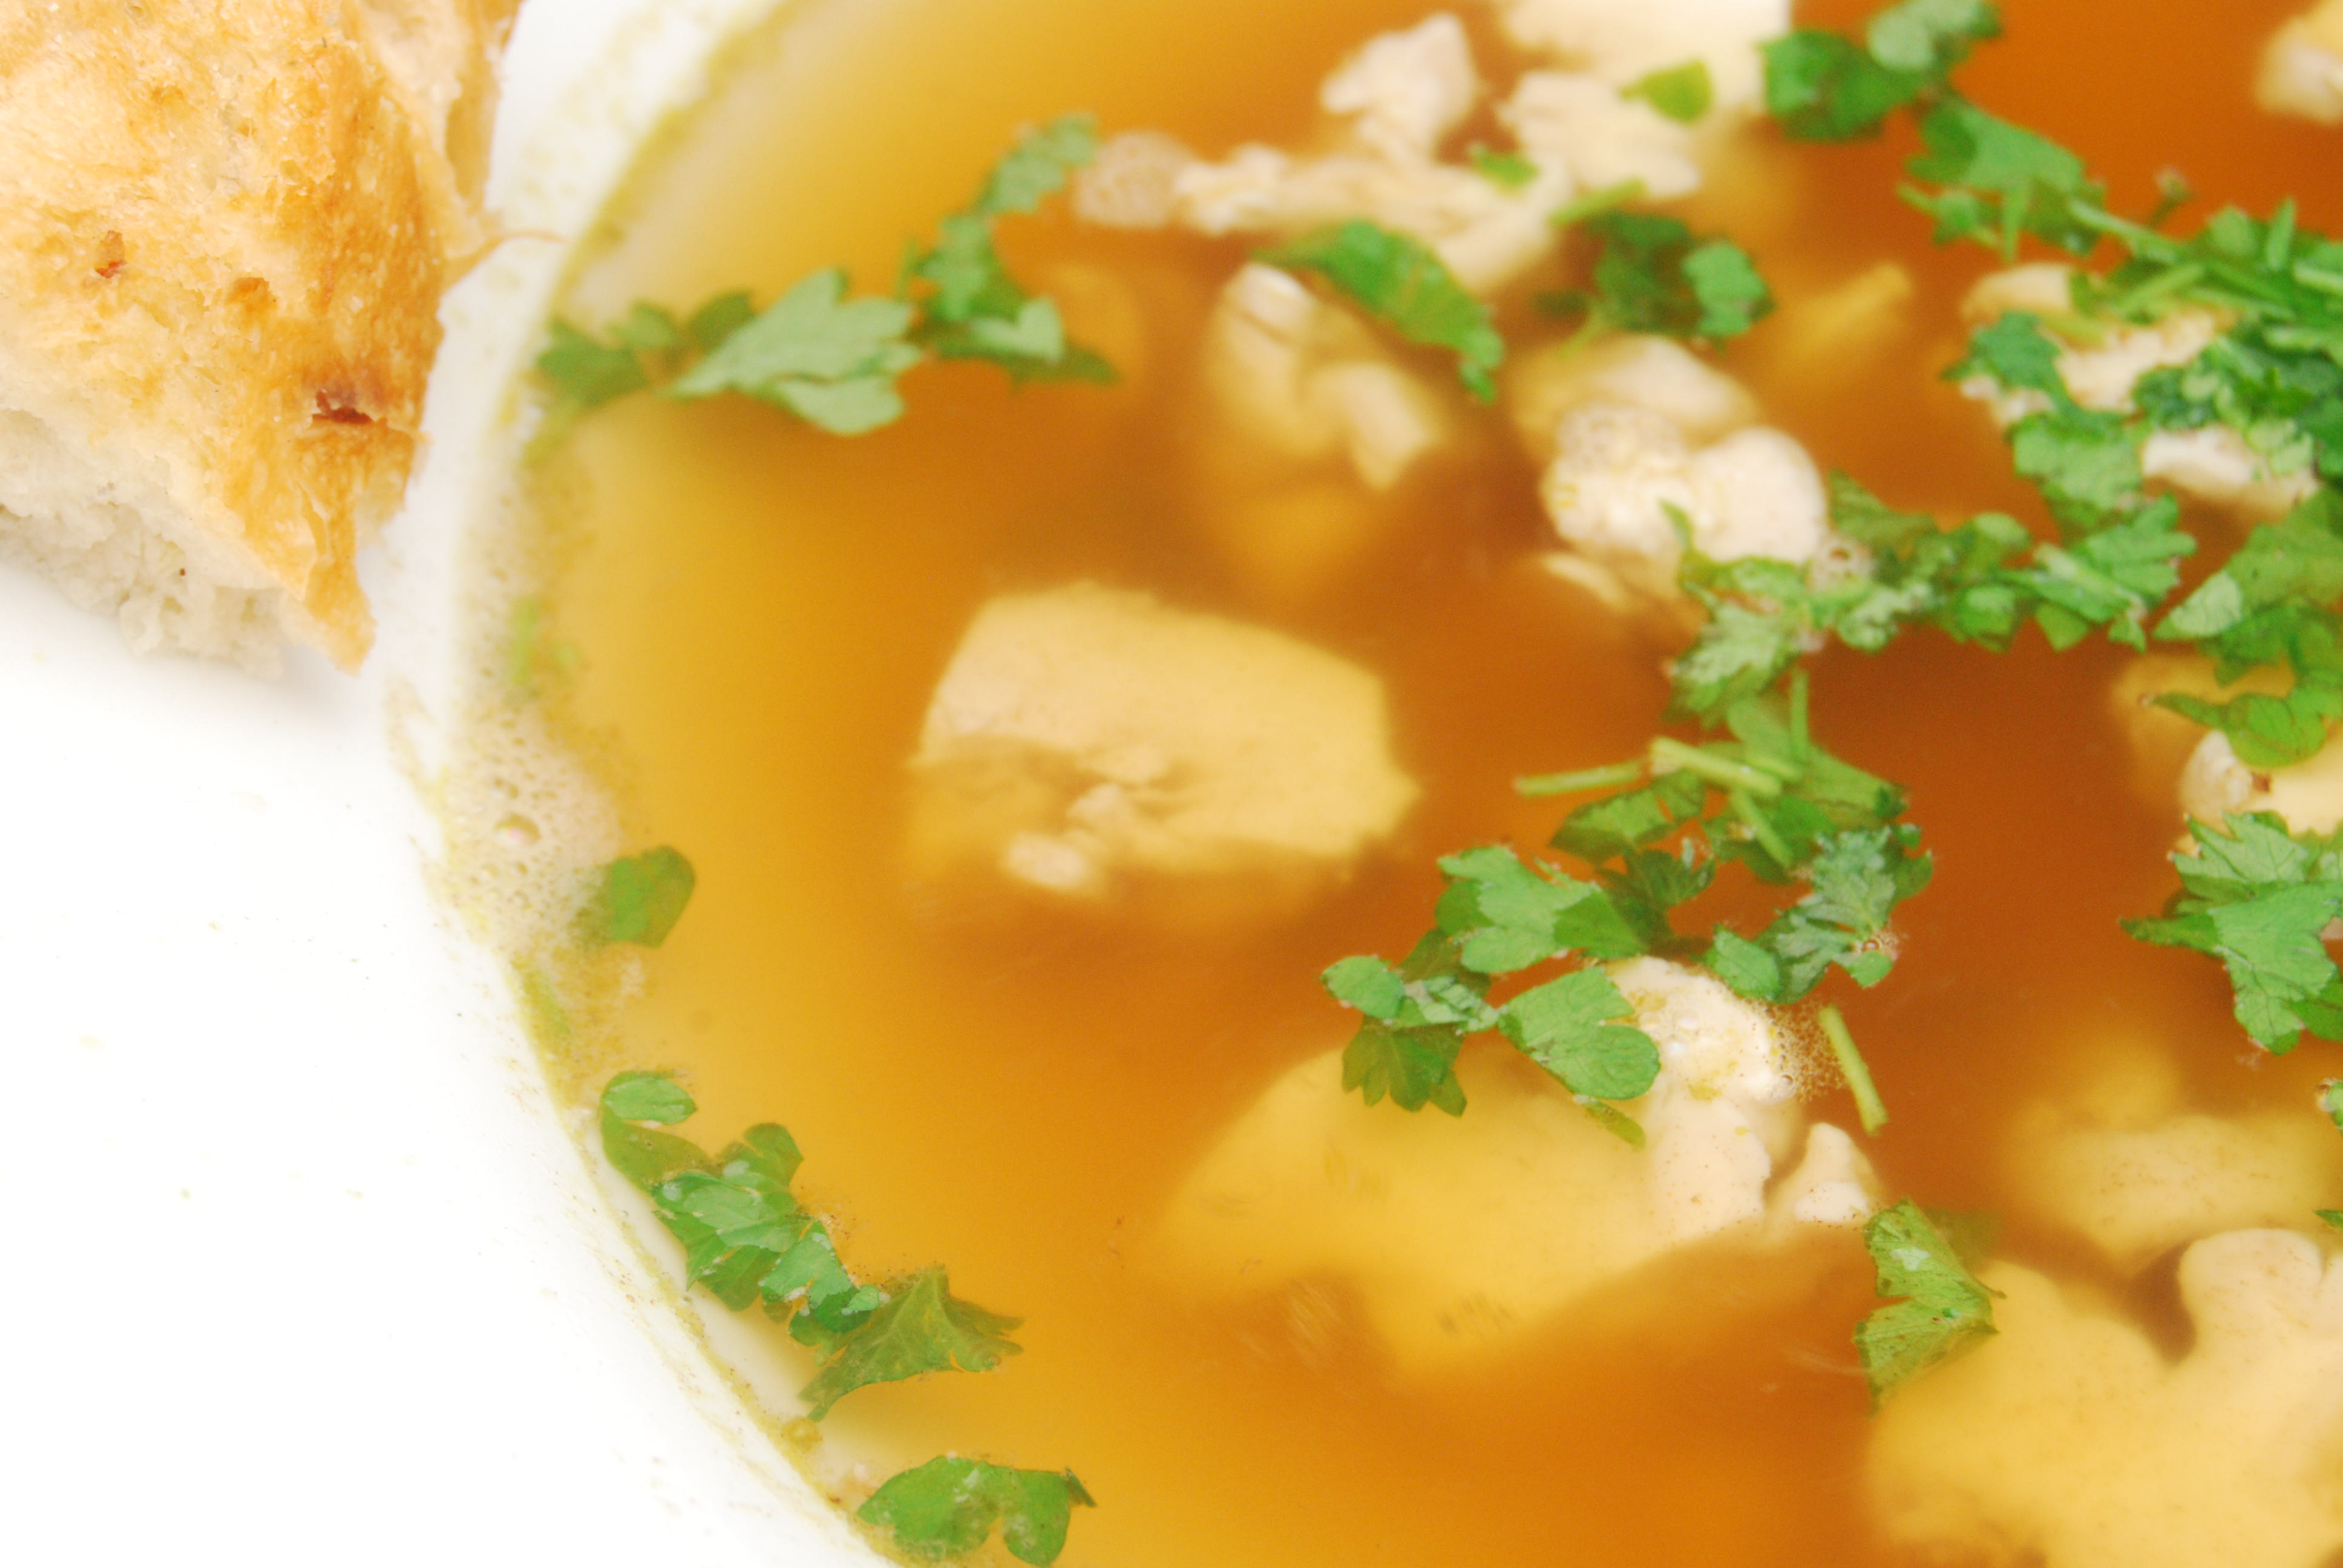 Hirn-Suppe